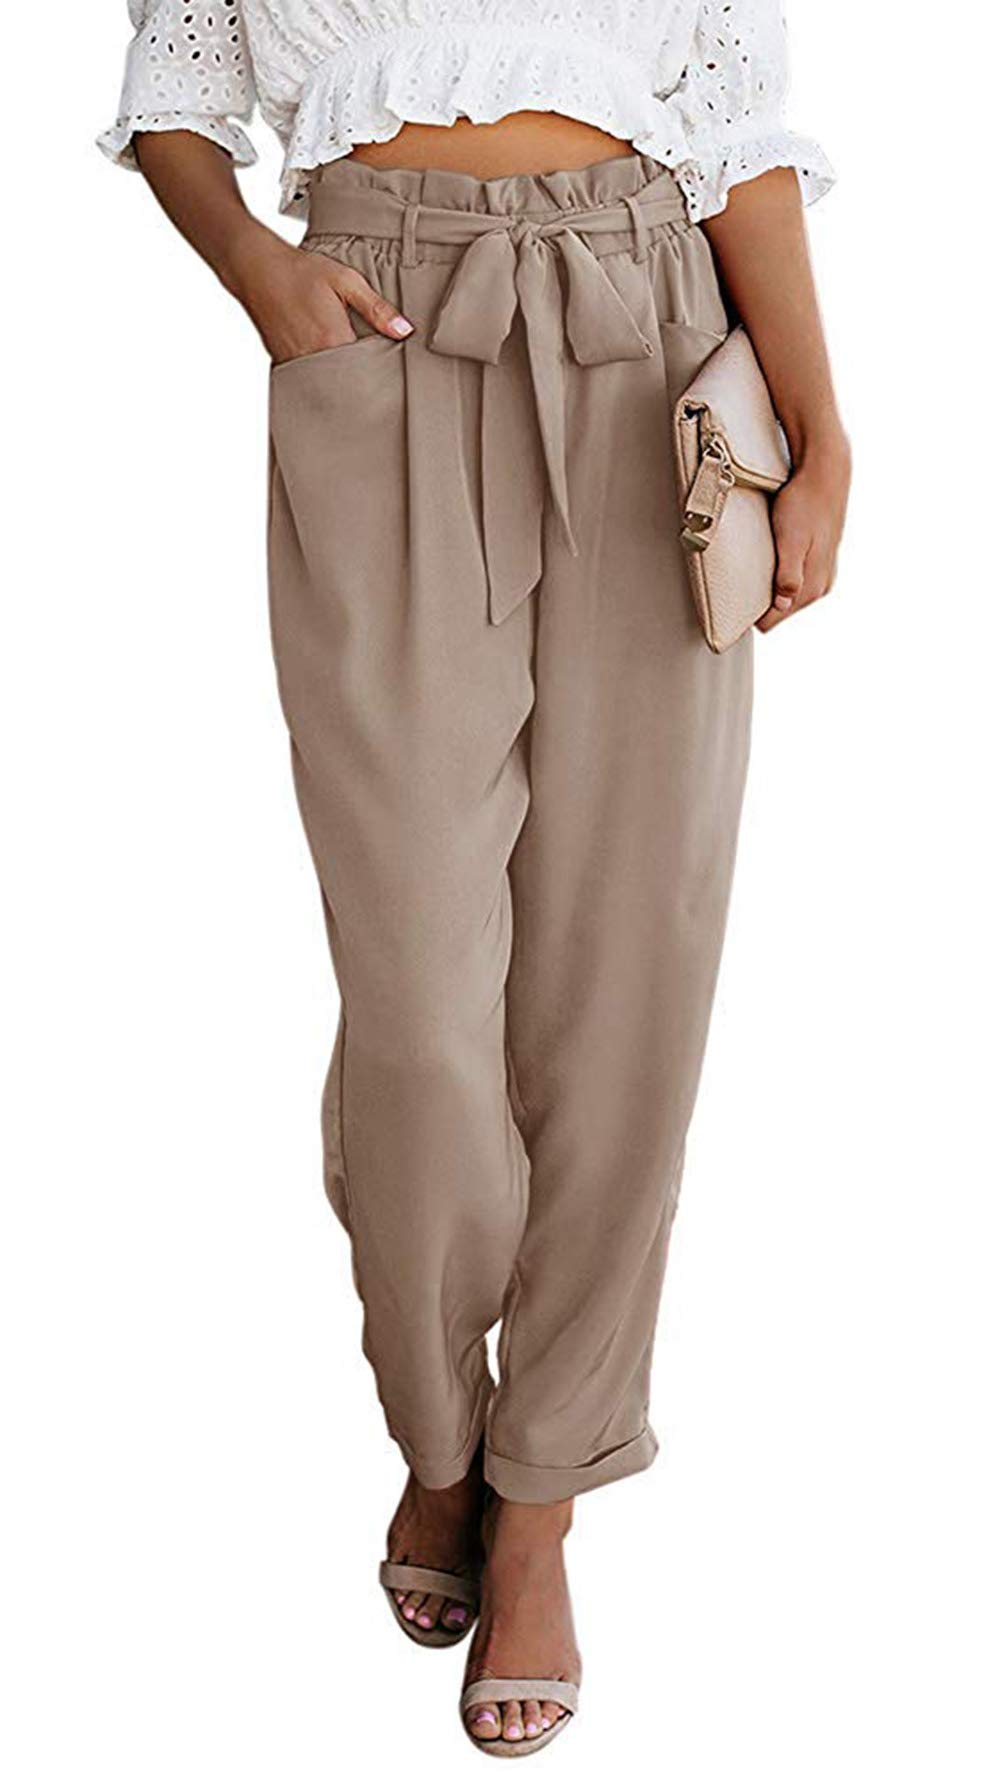 NEWFANGLE Women Paper Bag Pants Elastic High Waist Slim Casual Long Pants Cropped with Pockets,Khaki,S